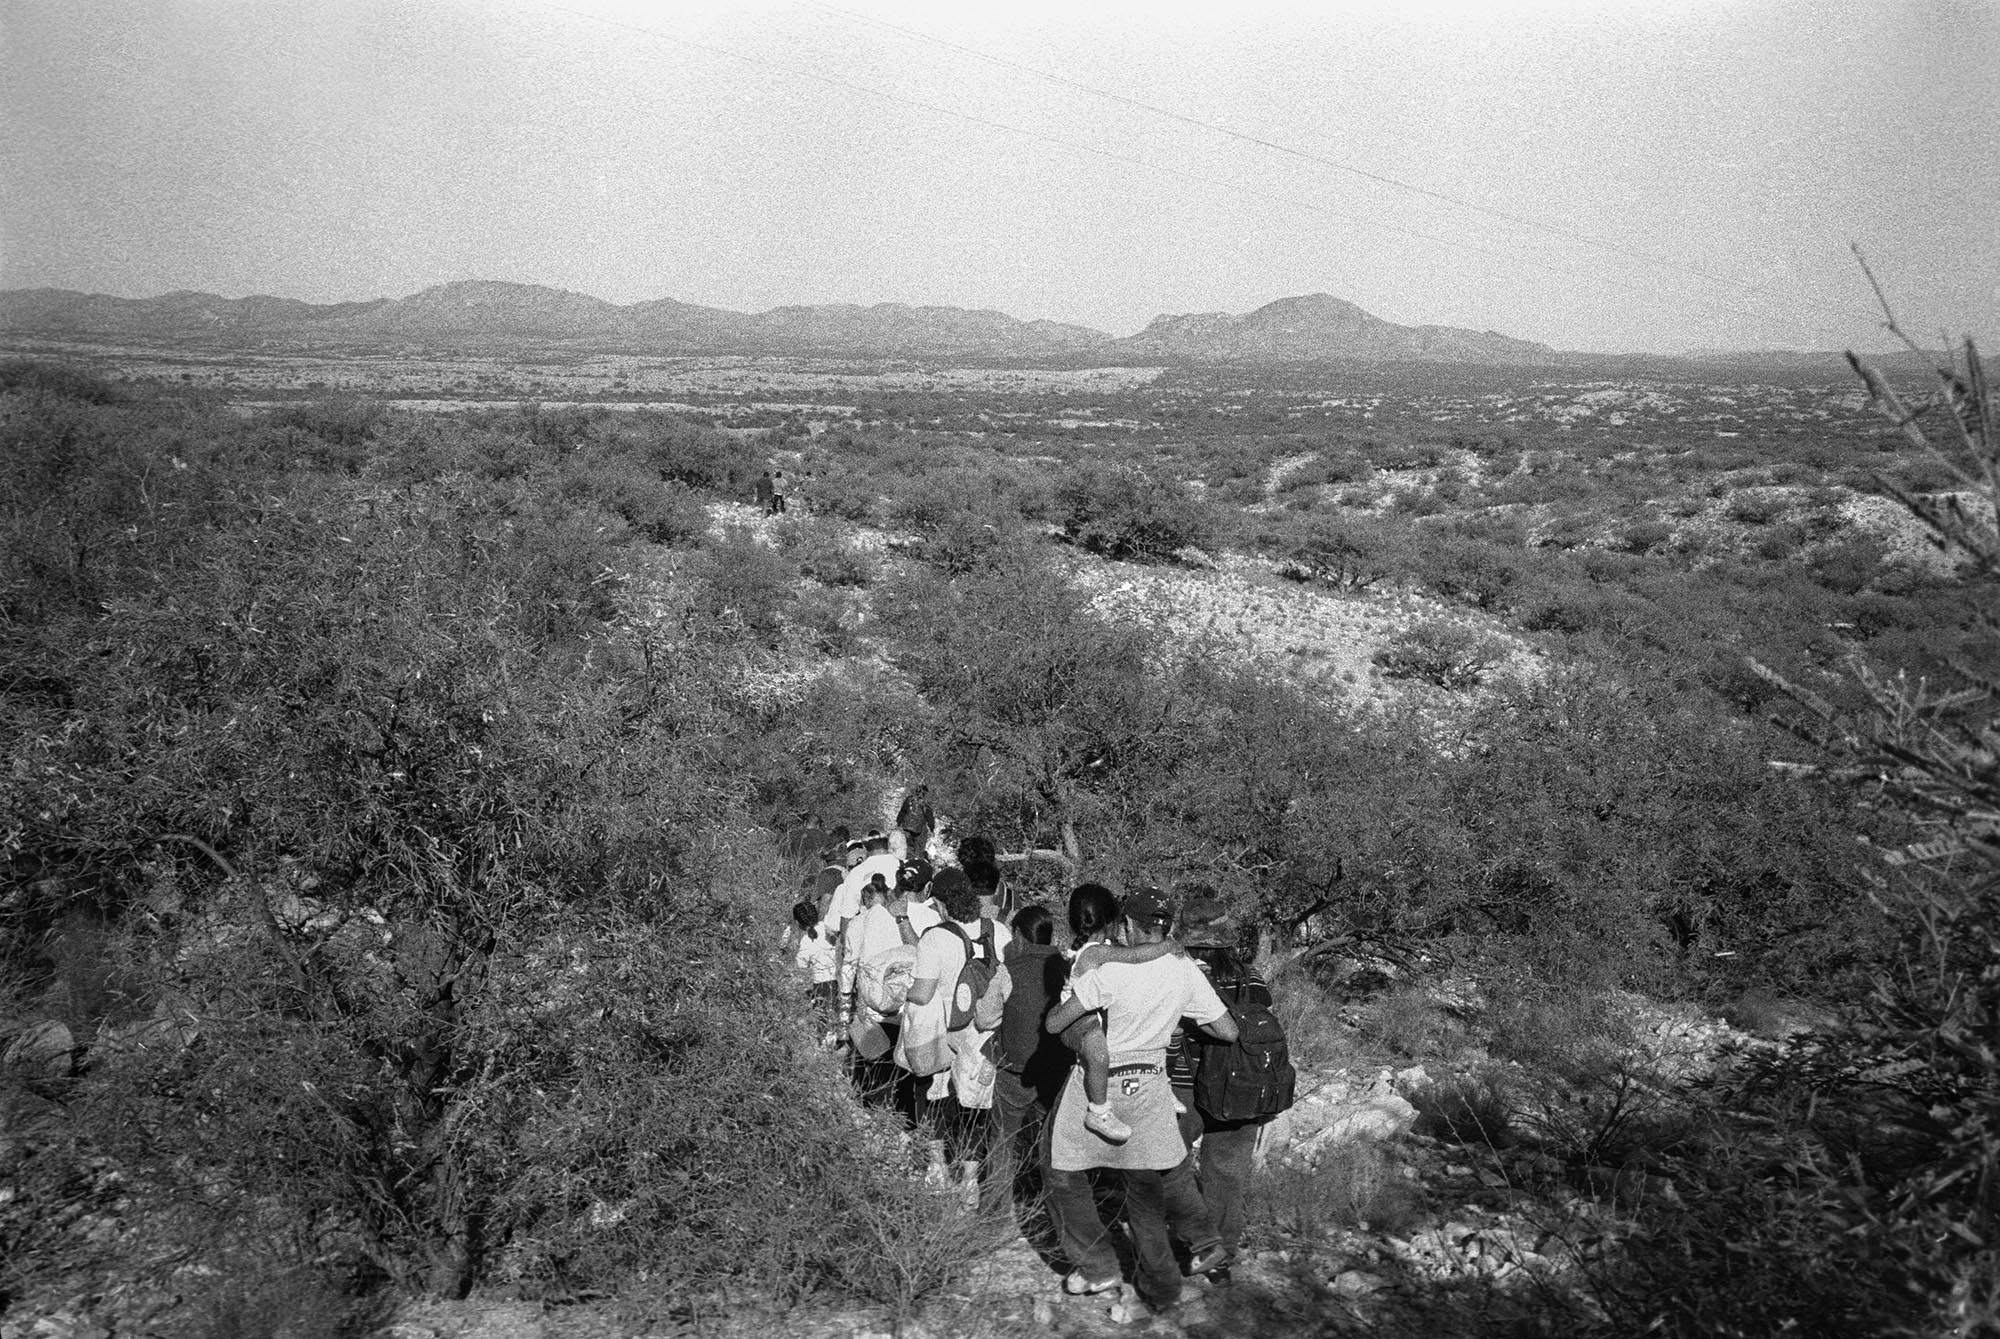 Migrants from Mexico crossing into the United States at the Buenos Aires National Wildlife Refuge near Sasabe, Arizona, 2005. Photo by  Julian Cardona.